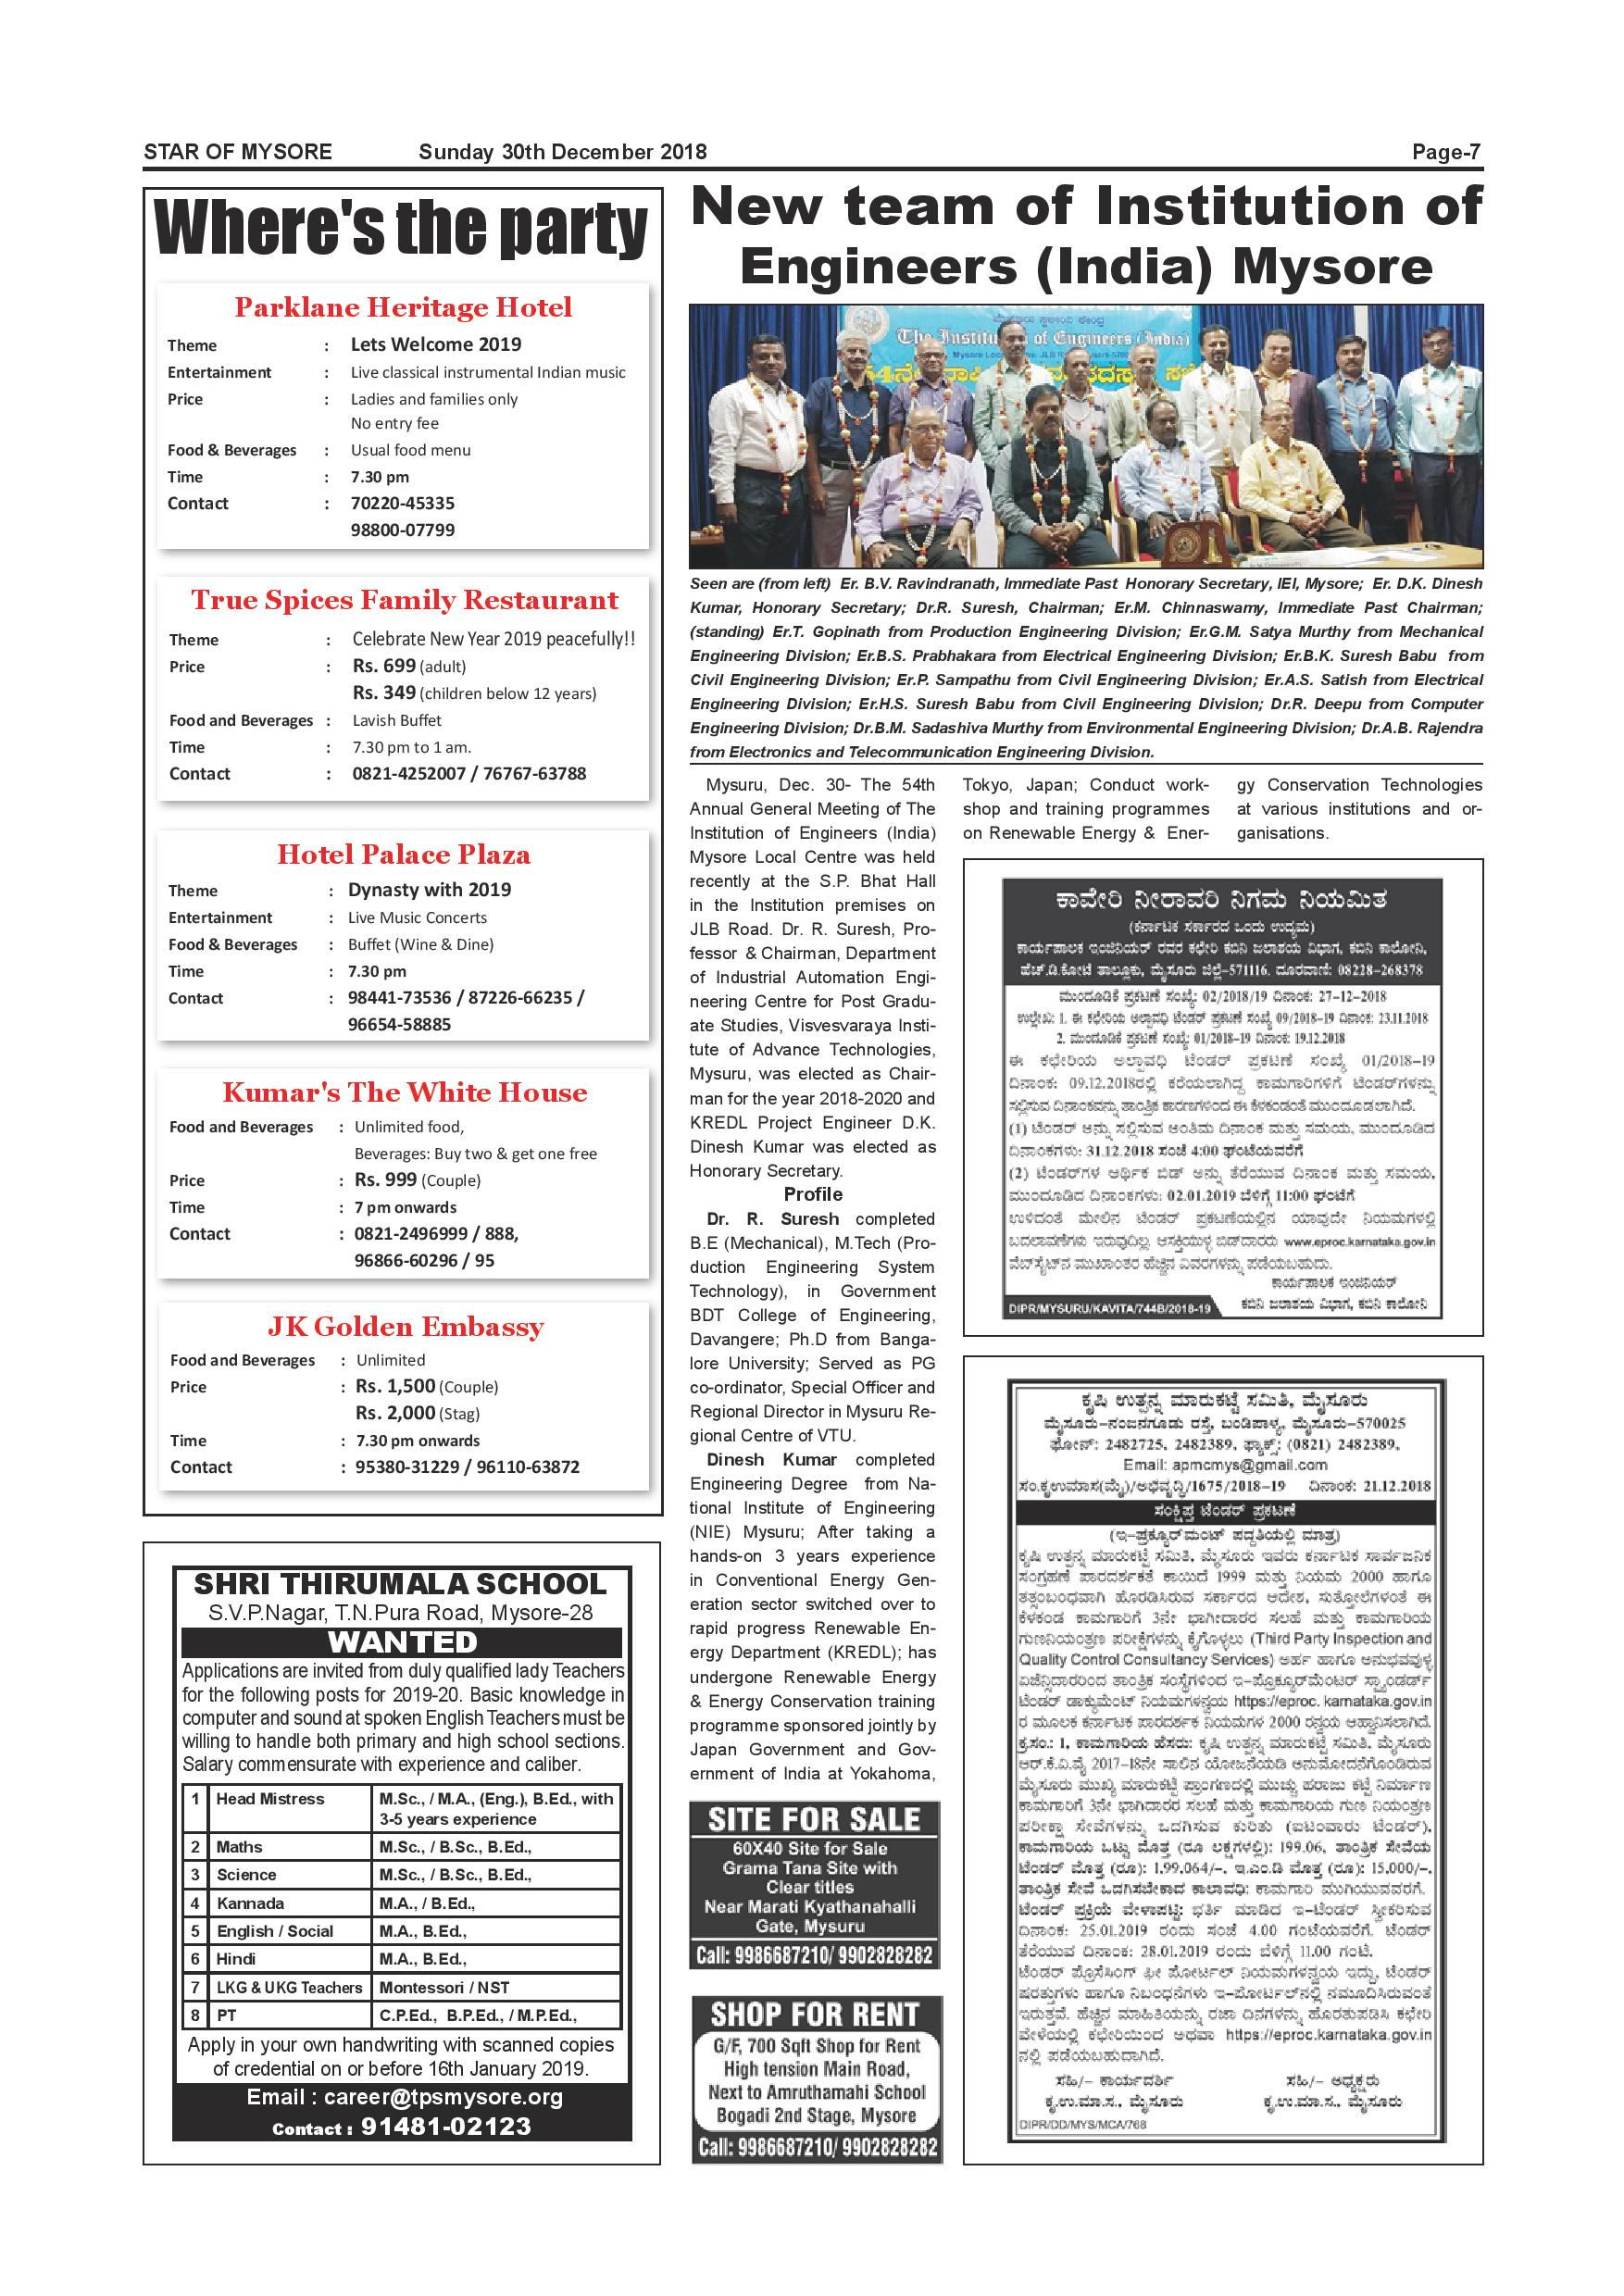 Page-007